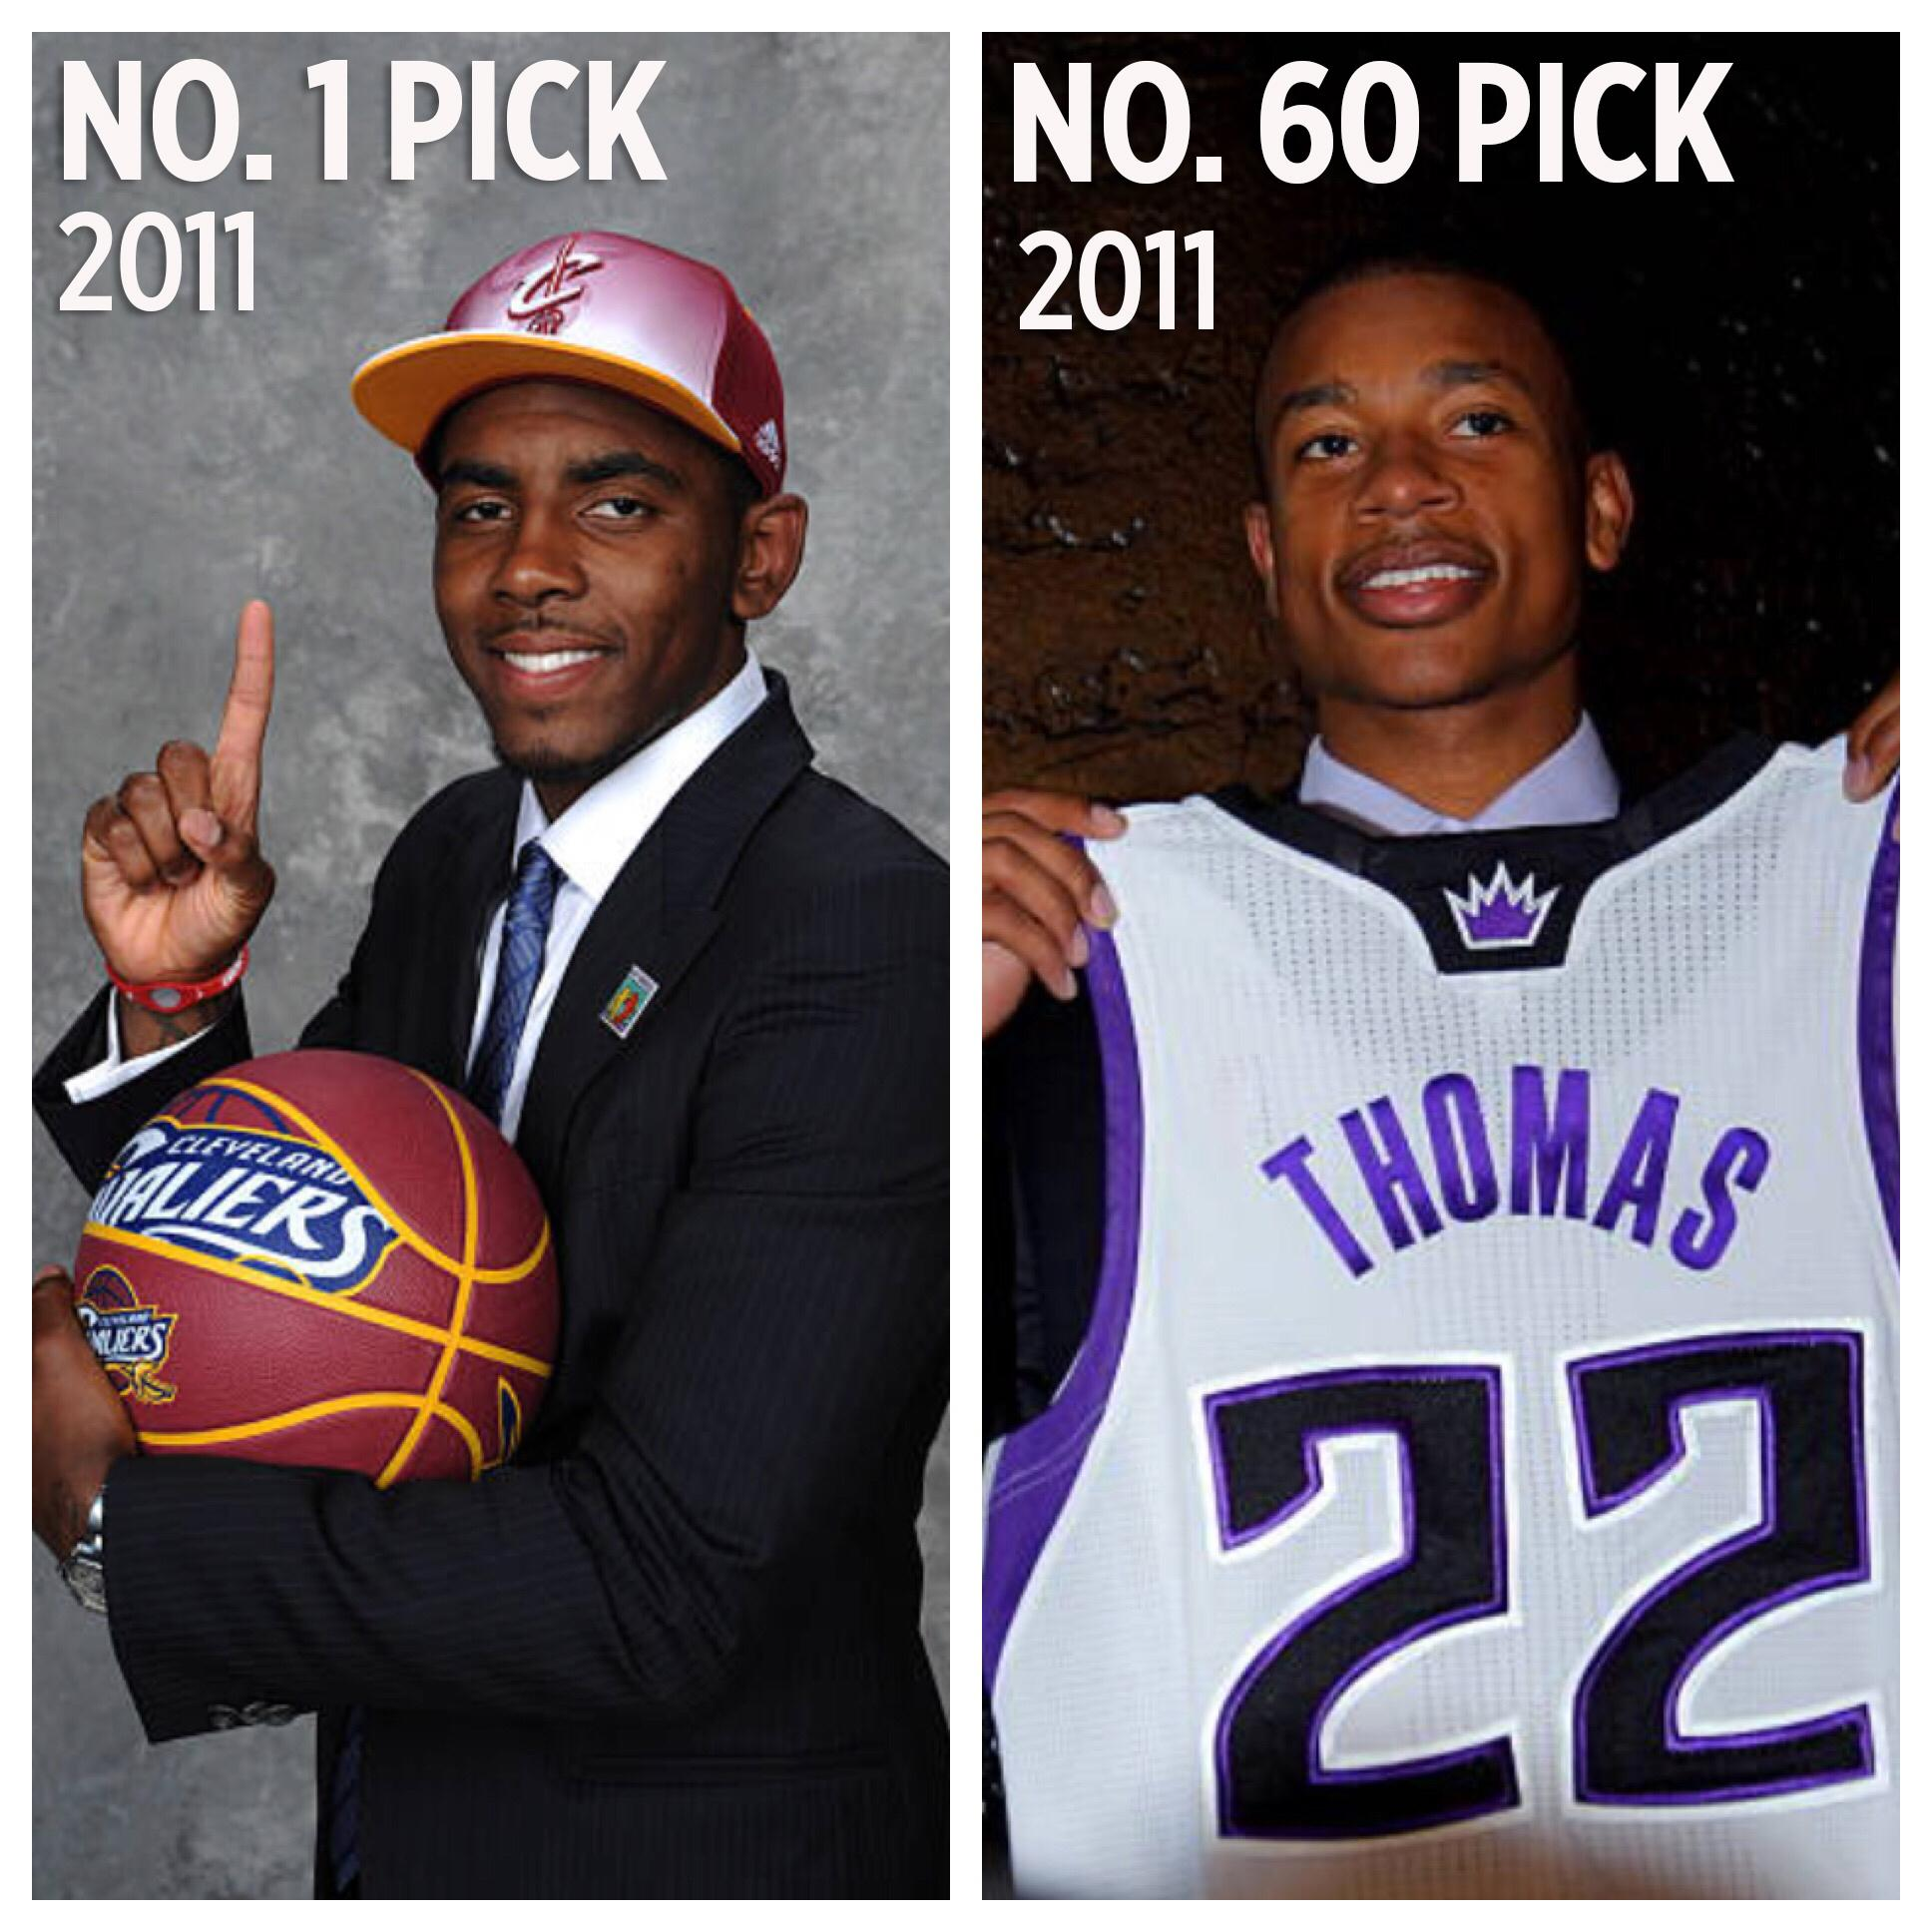 The 1st player of the 2011 draft was just traded for the last player in the SAME DRAFT. https://t.co/Aa08VeYbTN